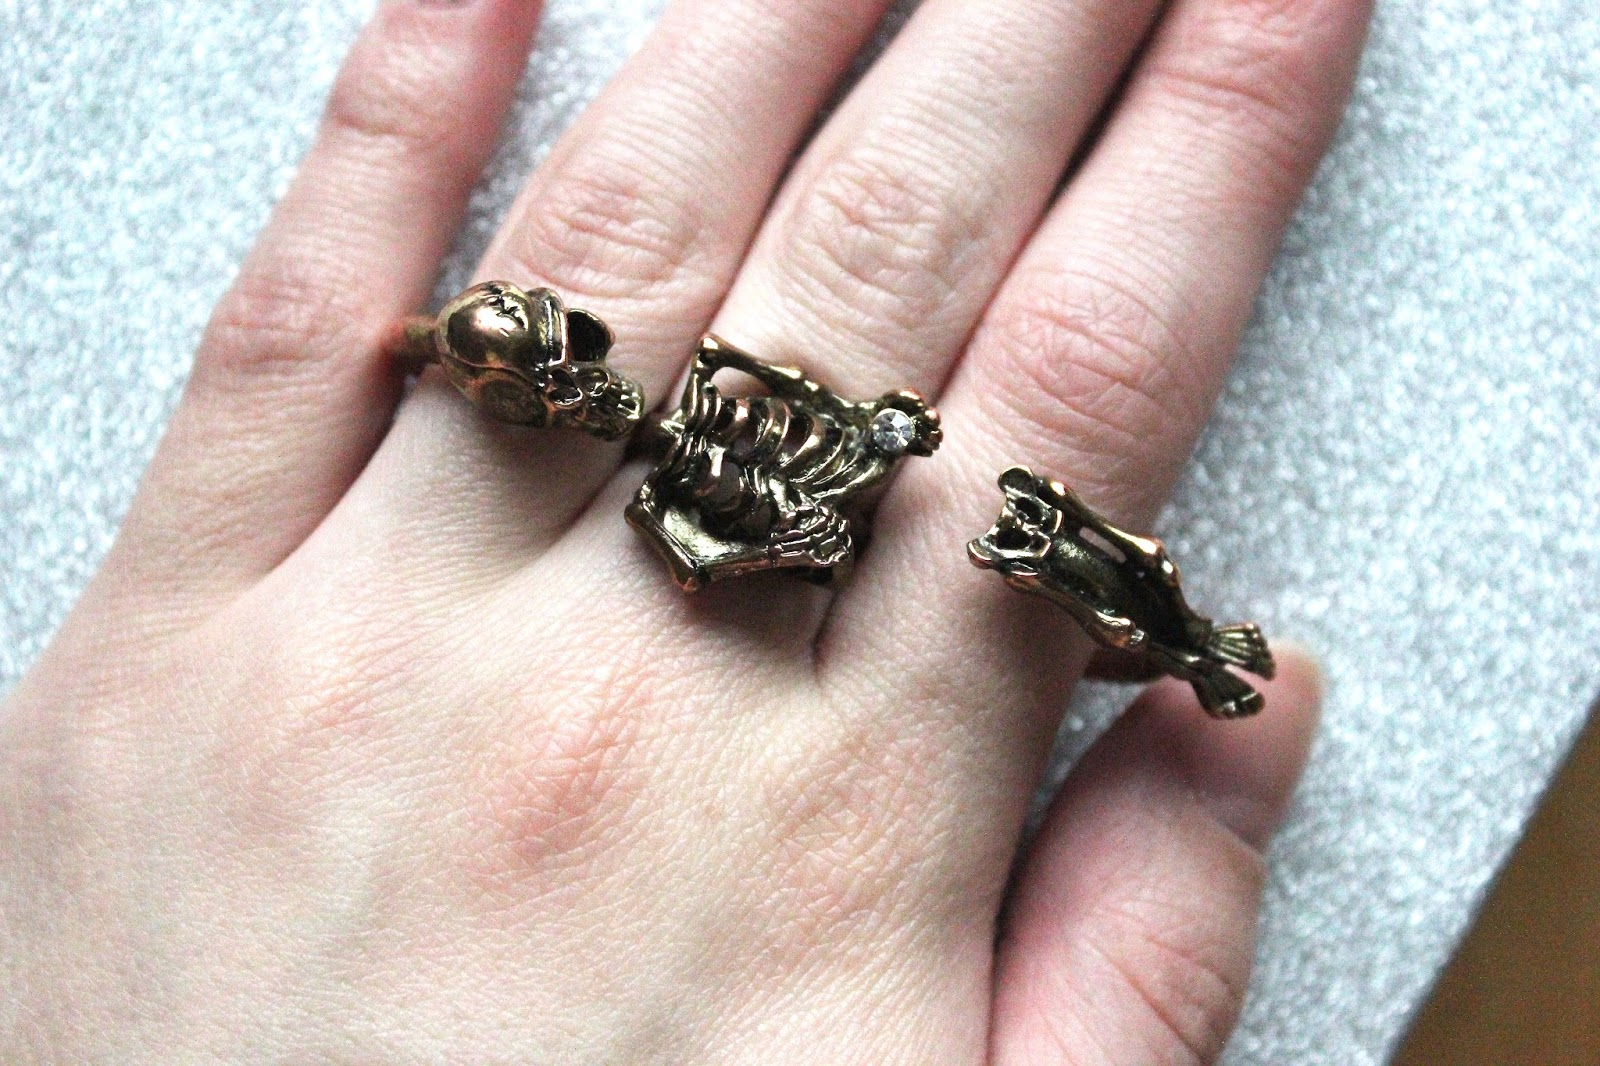 a top 5 round up of my favourite rings that I've been accessorising with over the winter months including from camden market